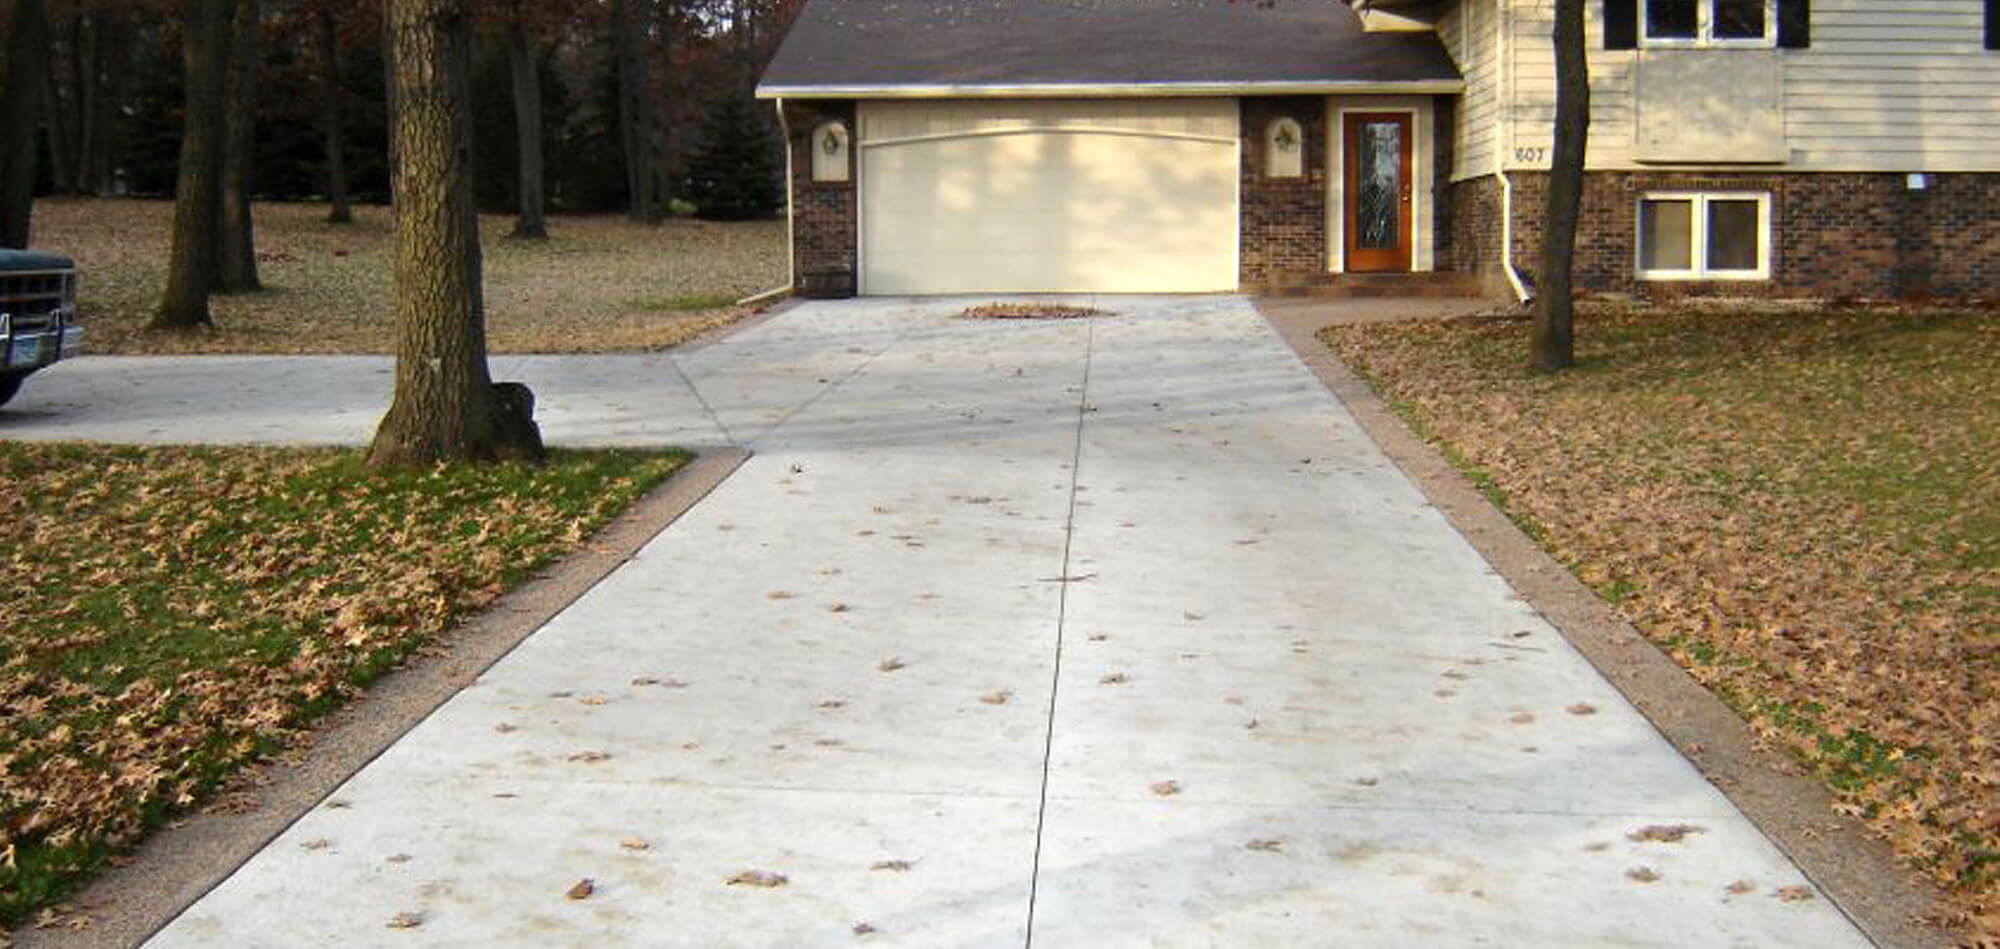 Freshly poured residential concrete driveway with decorative aggregate borders